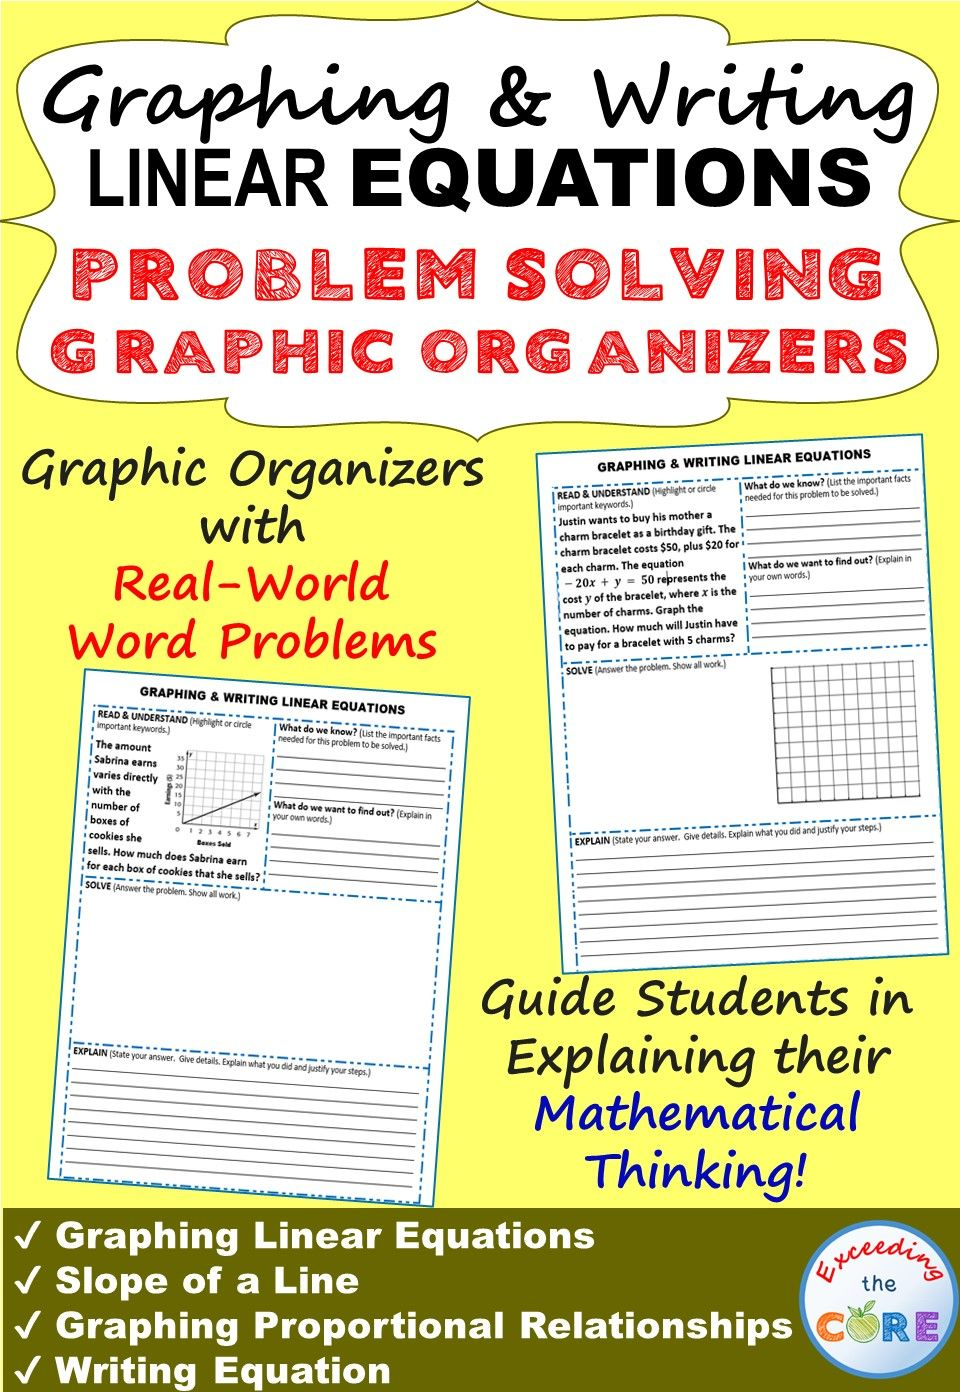 worksheet Writing Linear Equations graphing writing linear equations word problems with graphic organizer